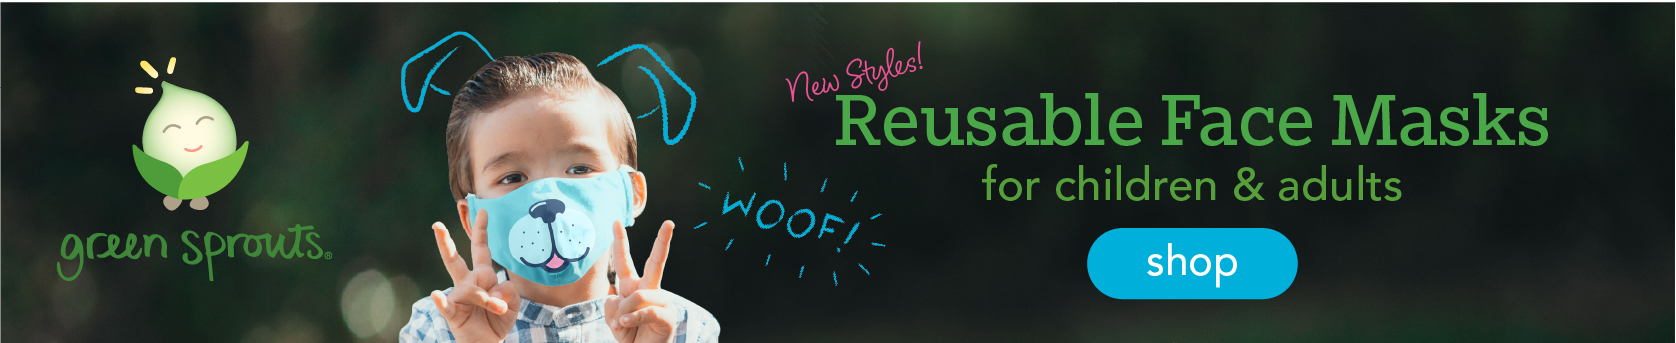 New Styles! Reusable Face Masks for children & adults